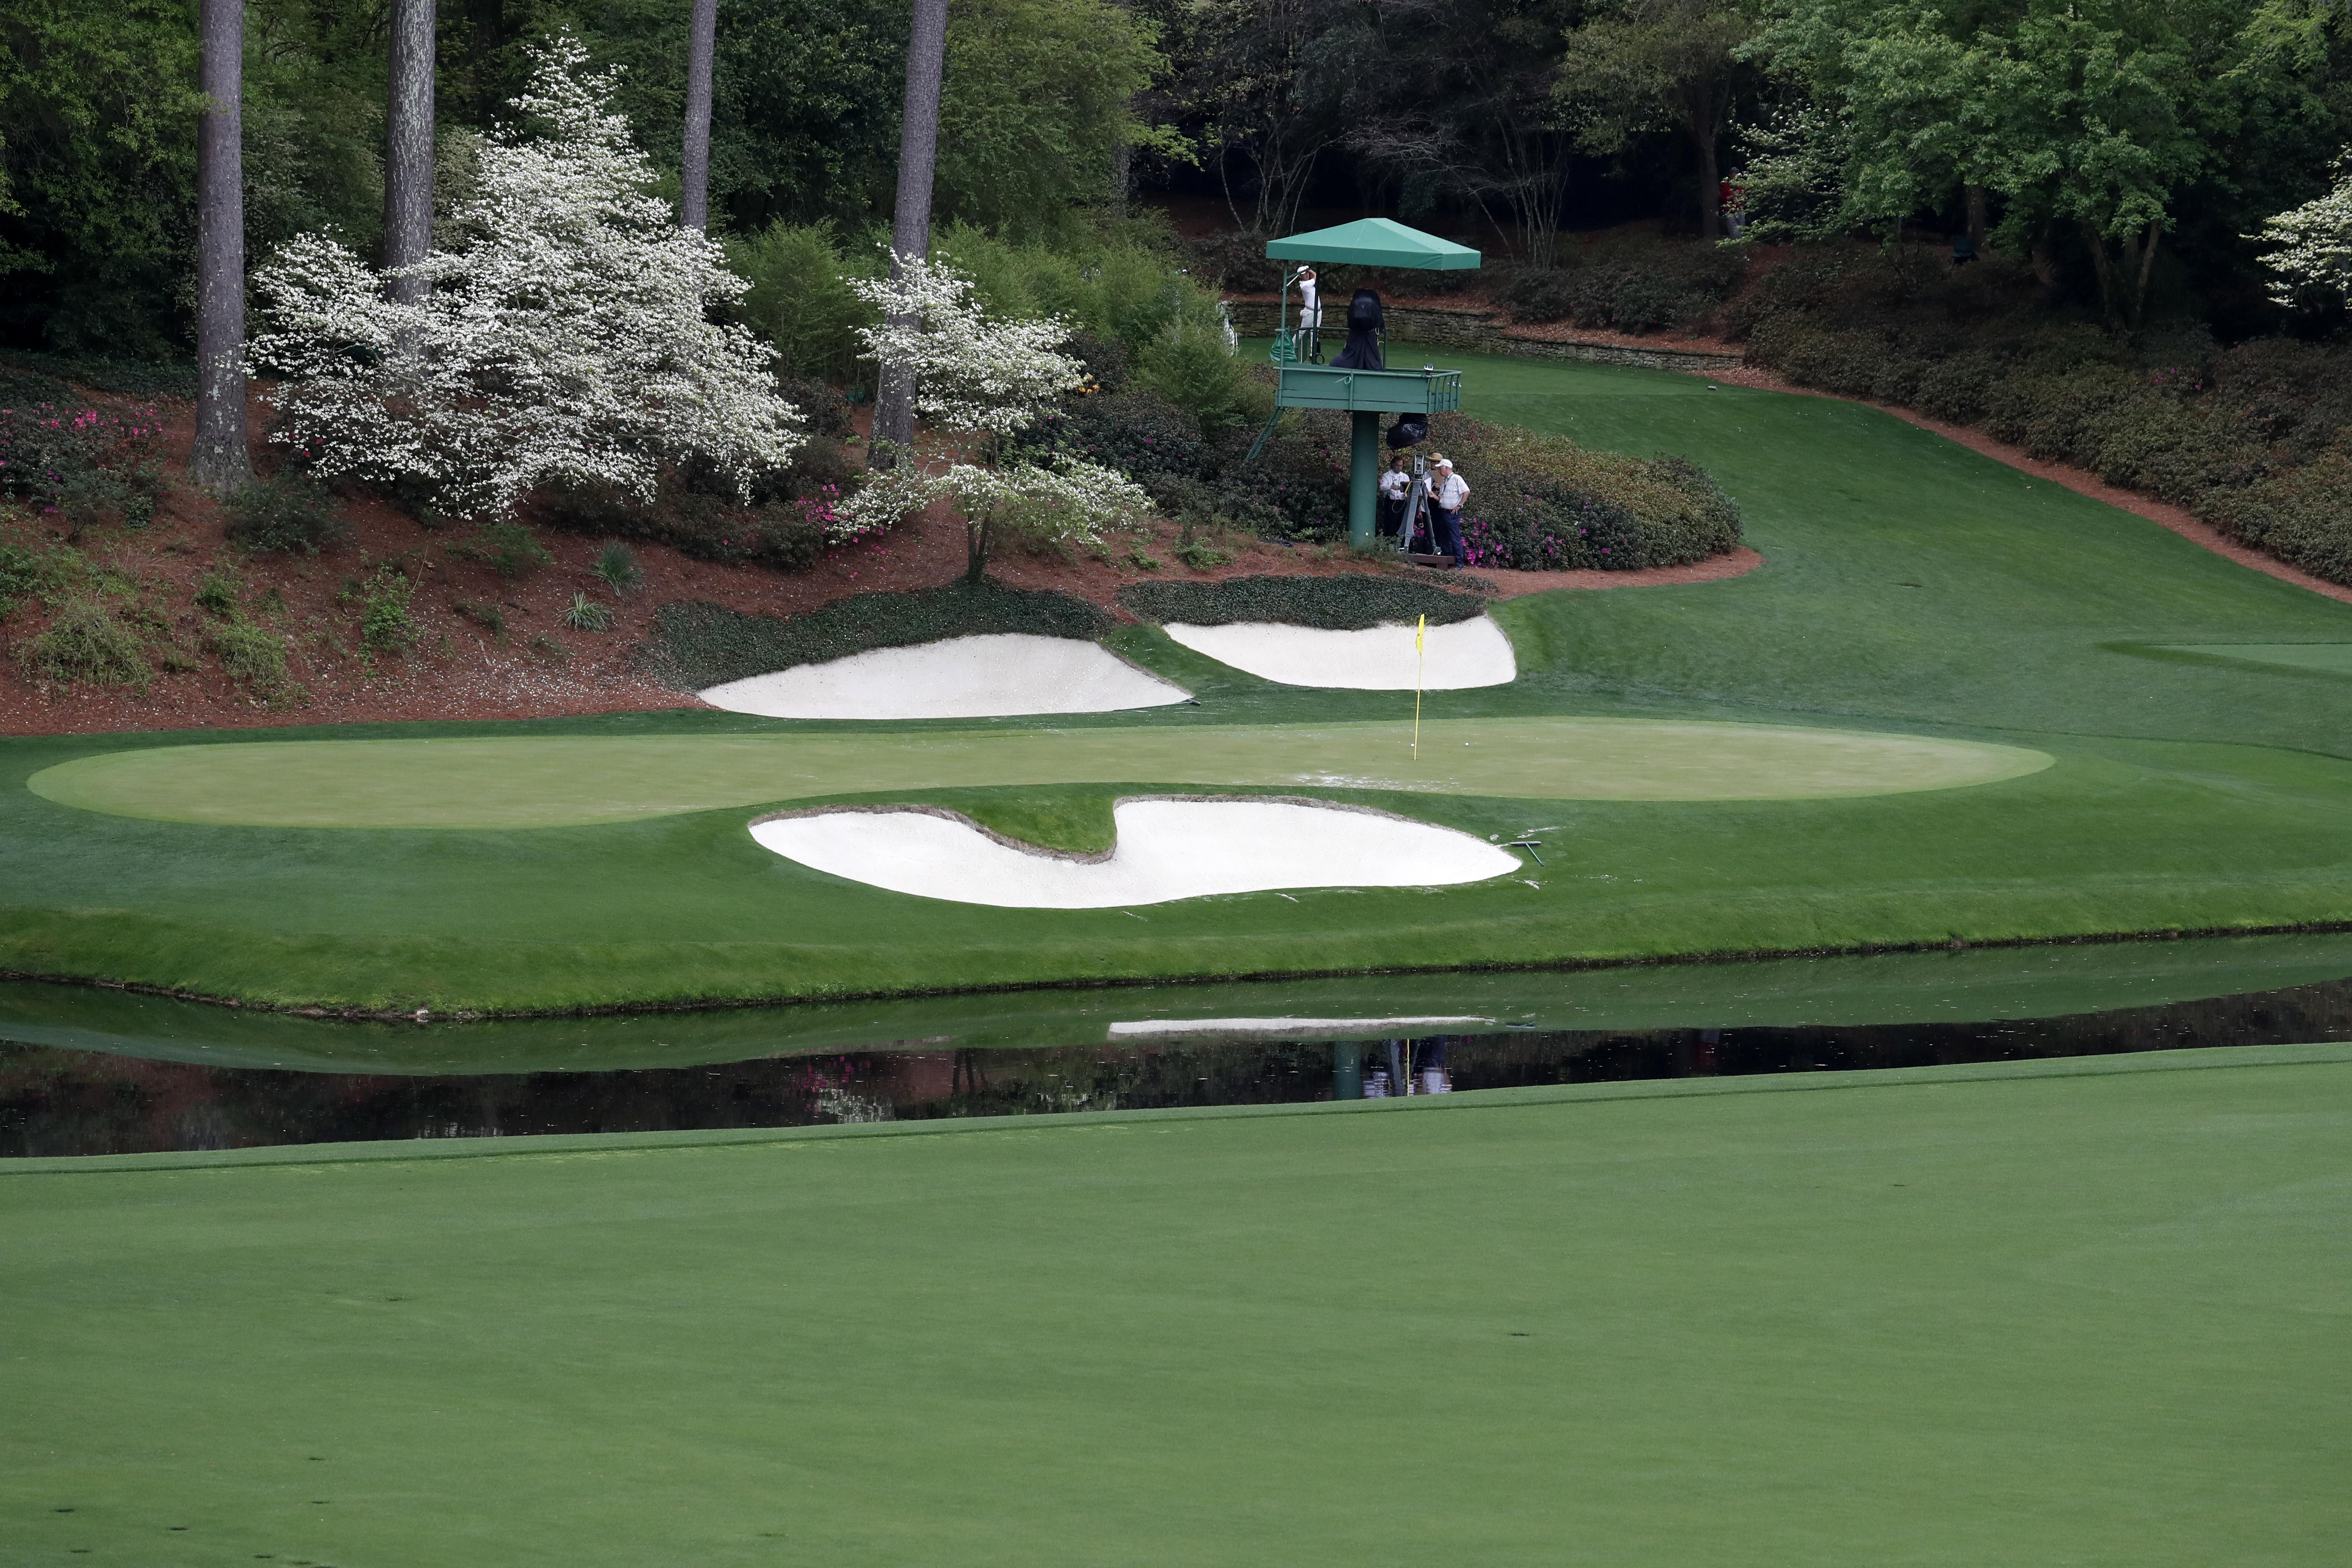 The world's best golfers will be tasking on the famous 12th hole at Augusta